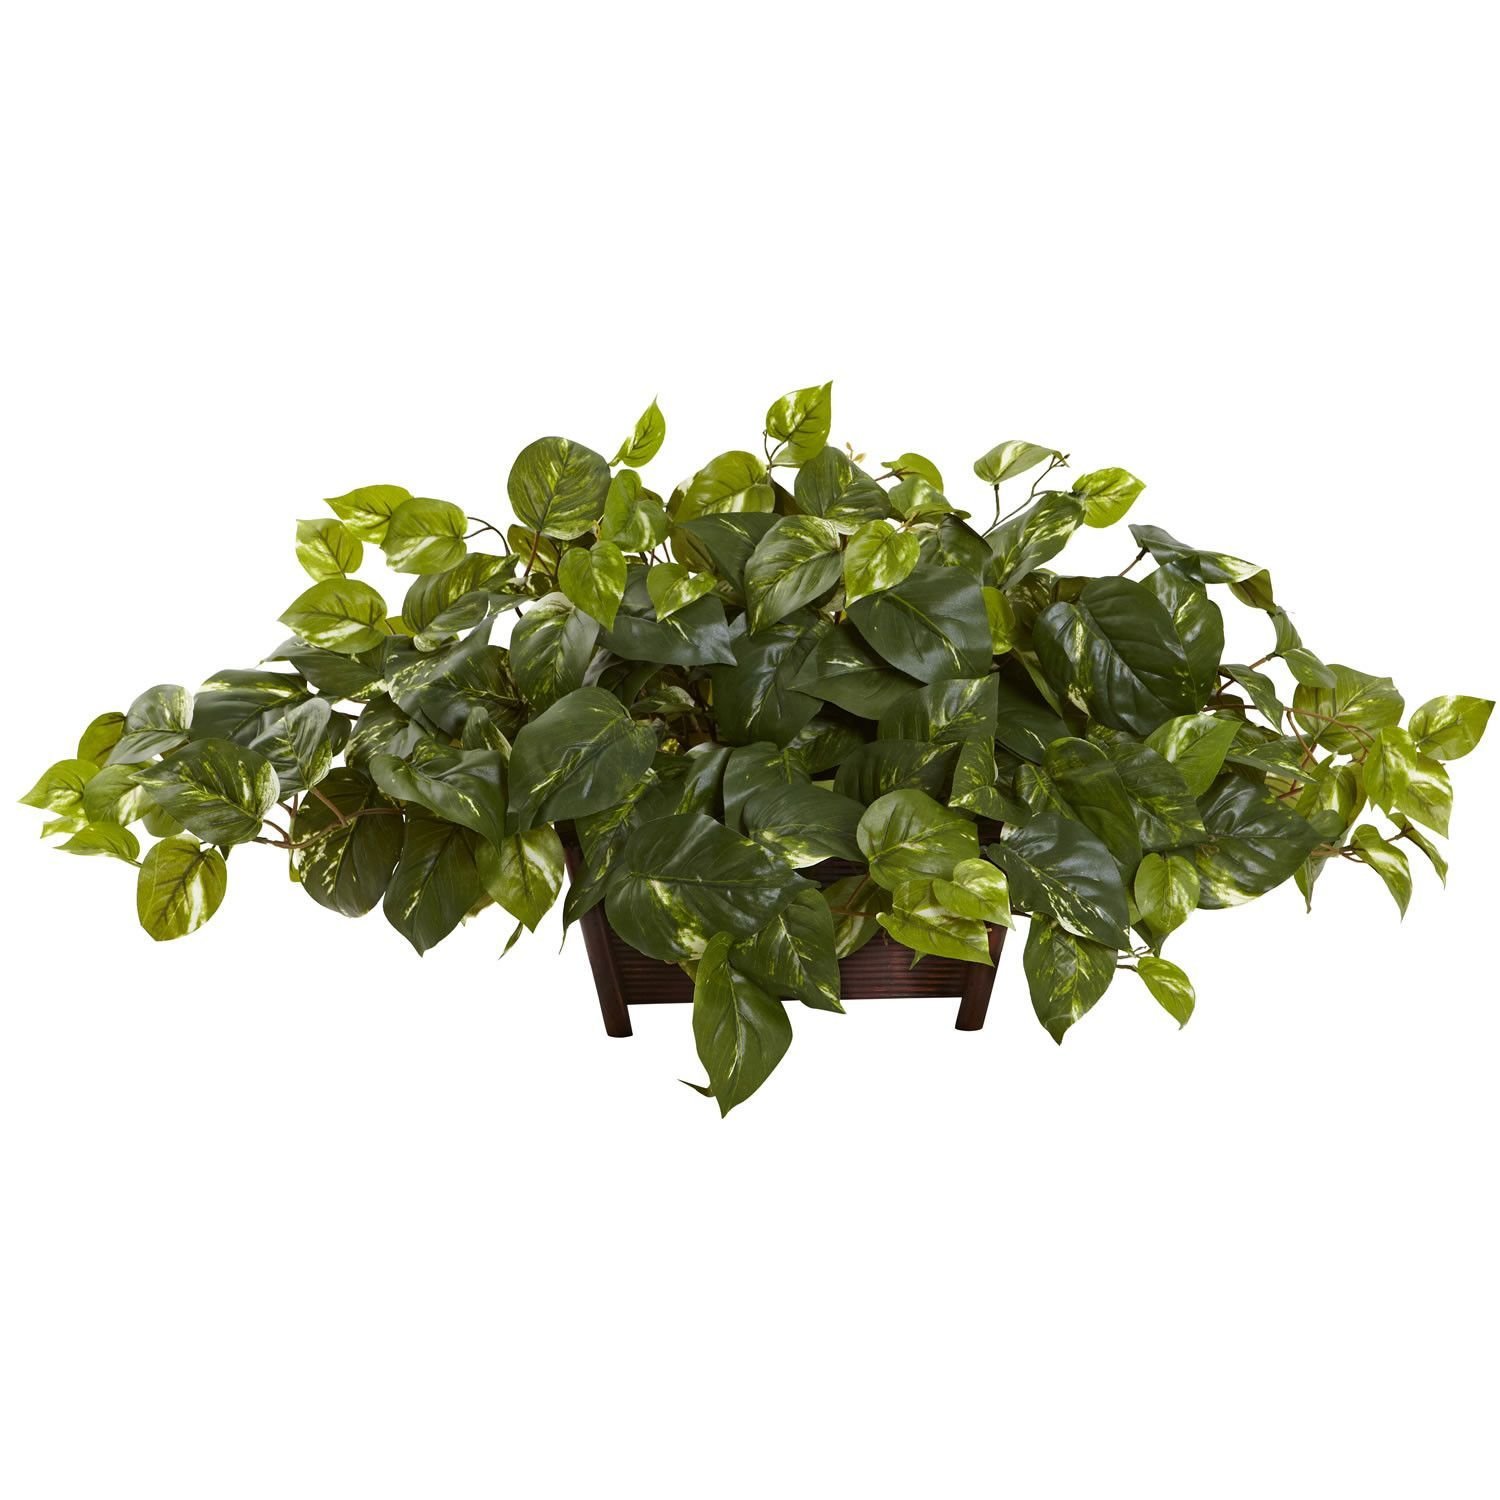 Pothos wrectangle decorative planter if you are looking for